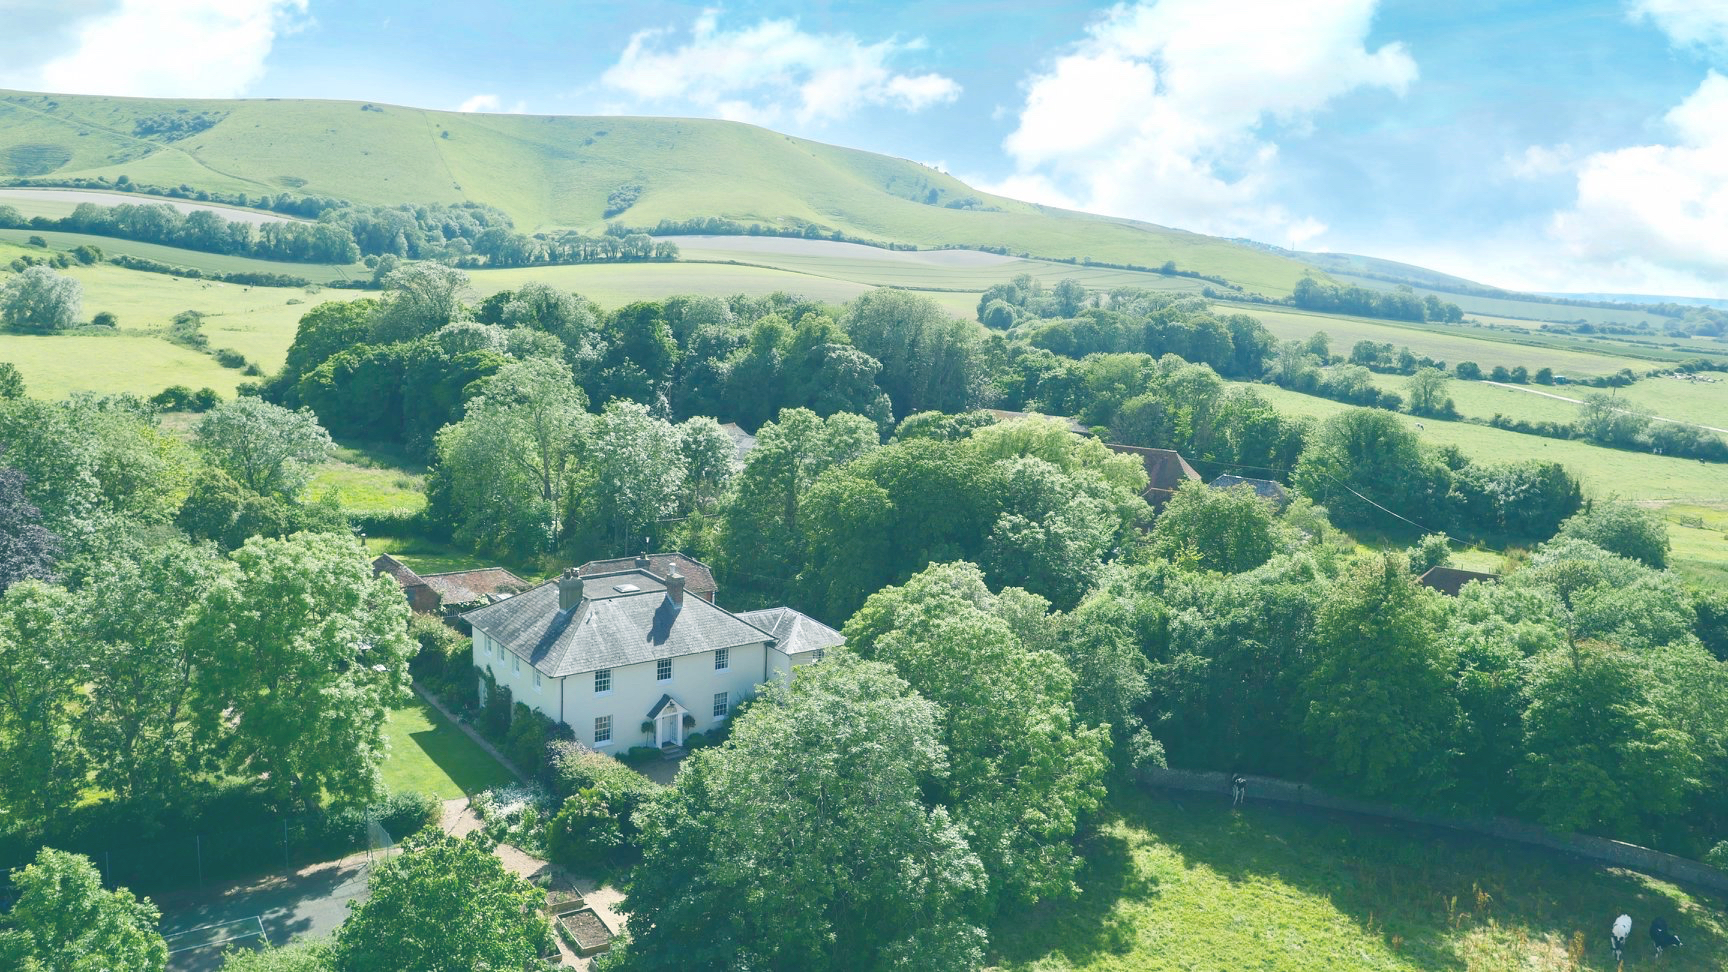 Retreat in Sussex,England - 8th - 12th June 2020To be the first to receive an invitation to this wonderful retreat in the heart of the Sussex countryside please sign up to Crystal Singing Bowls UK newsletter